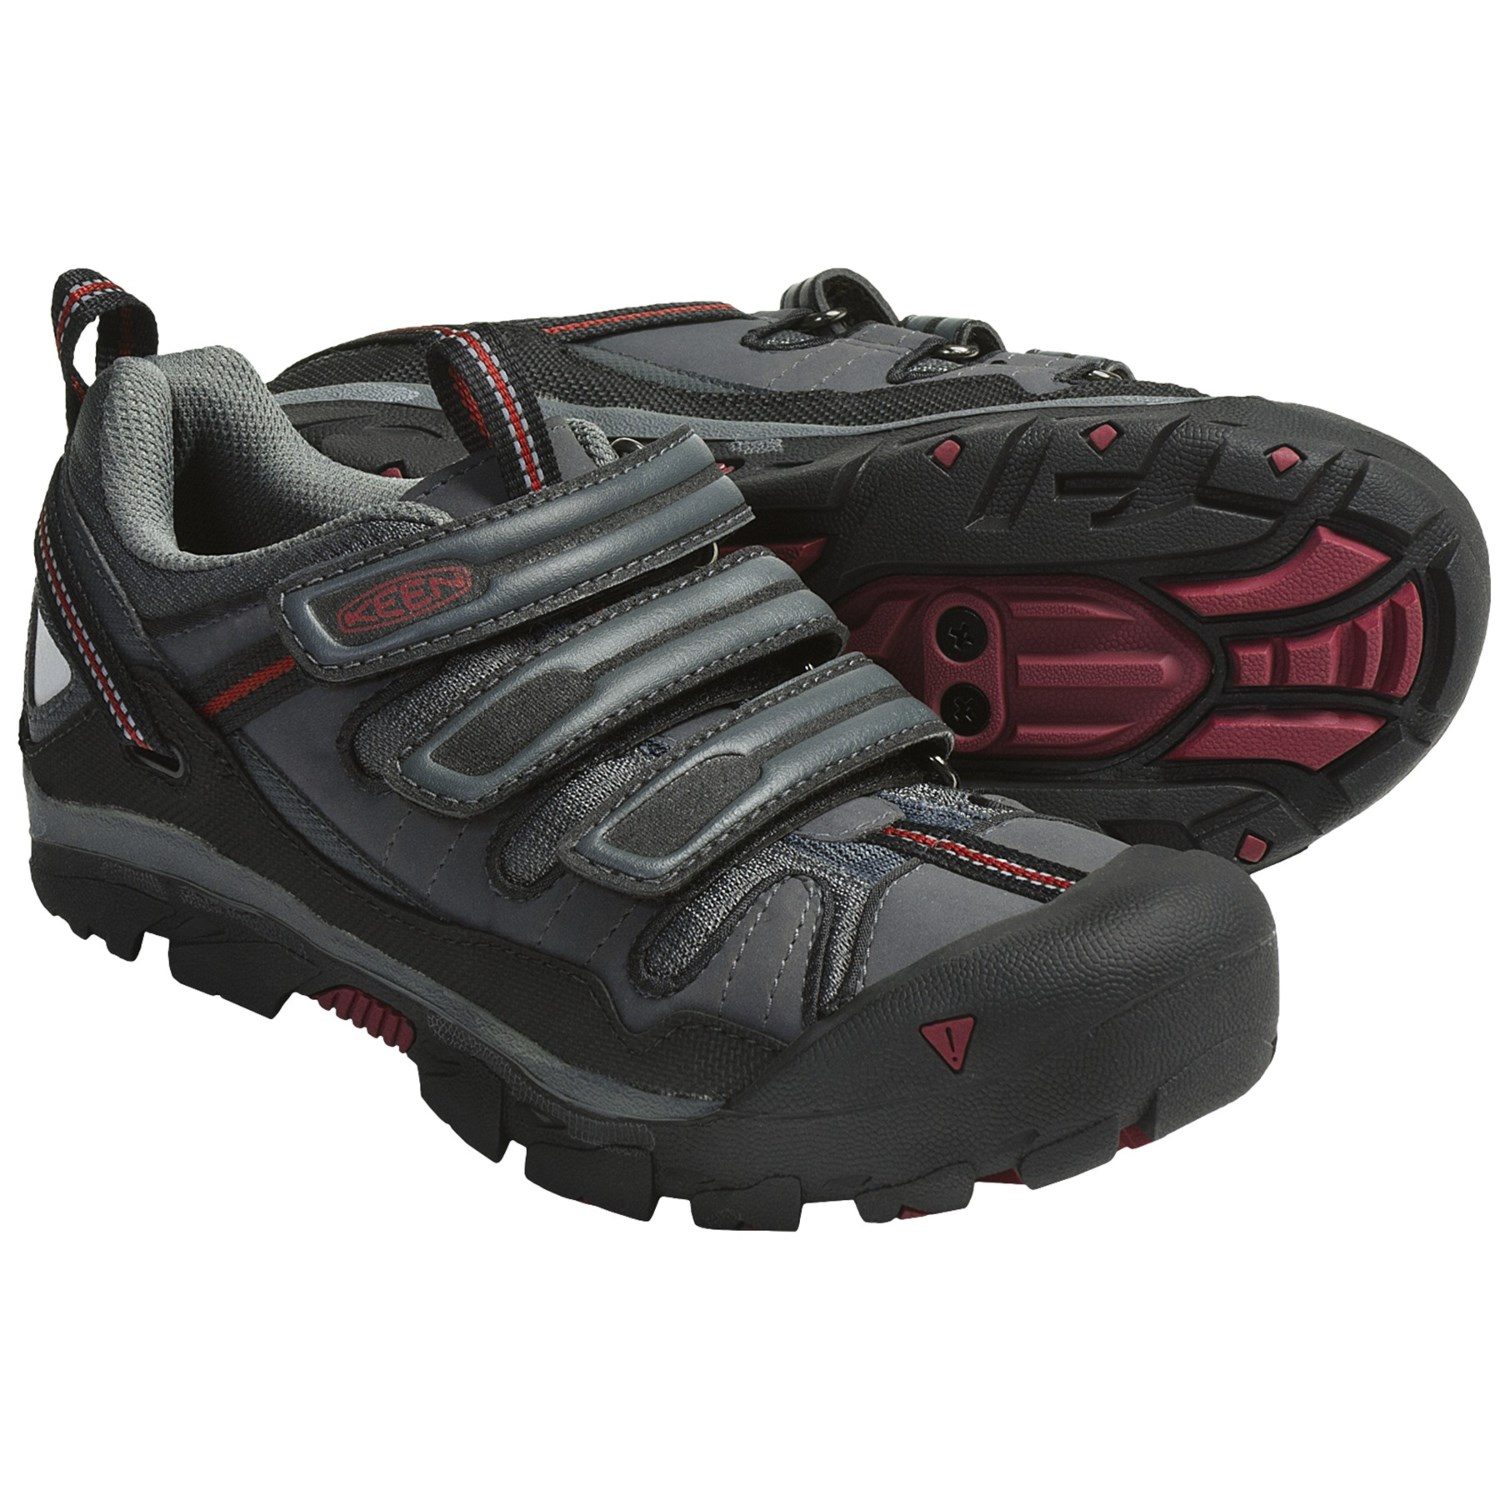 Wiggle | Shimano R088 SPD-SL Road Shoes - Wide Fit | Road Shoes